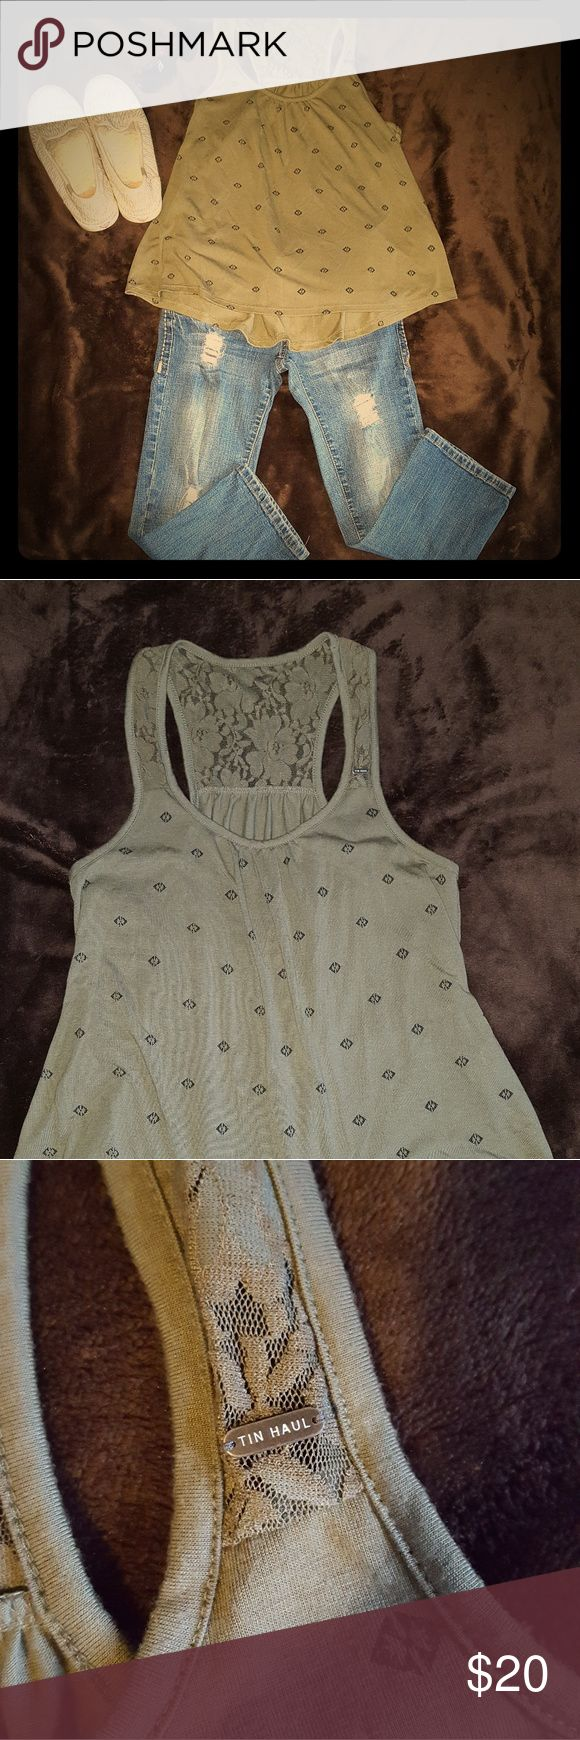 Tin Haul high/low tank NWOT!! Gorgeous olive green color, lace racerback. Comes from a smoke and pet free home. Thanks! Tin Haul Tops Tank Tops